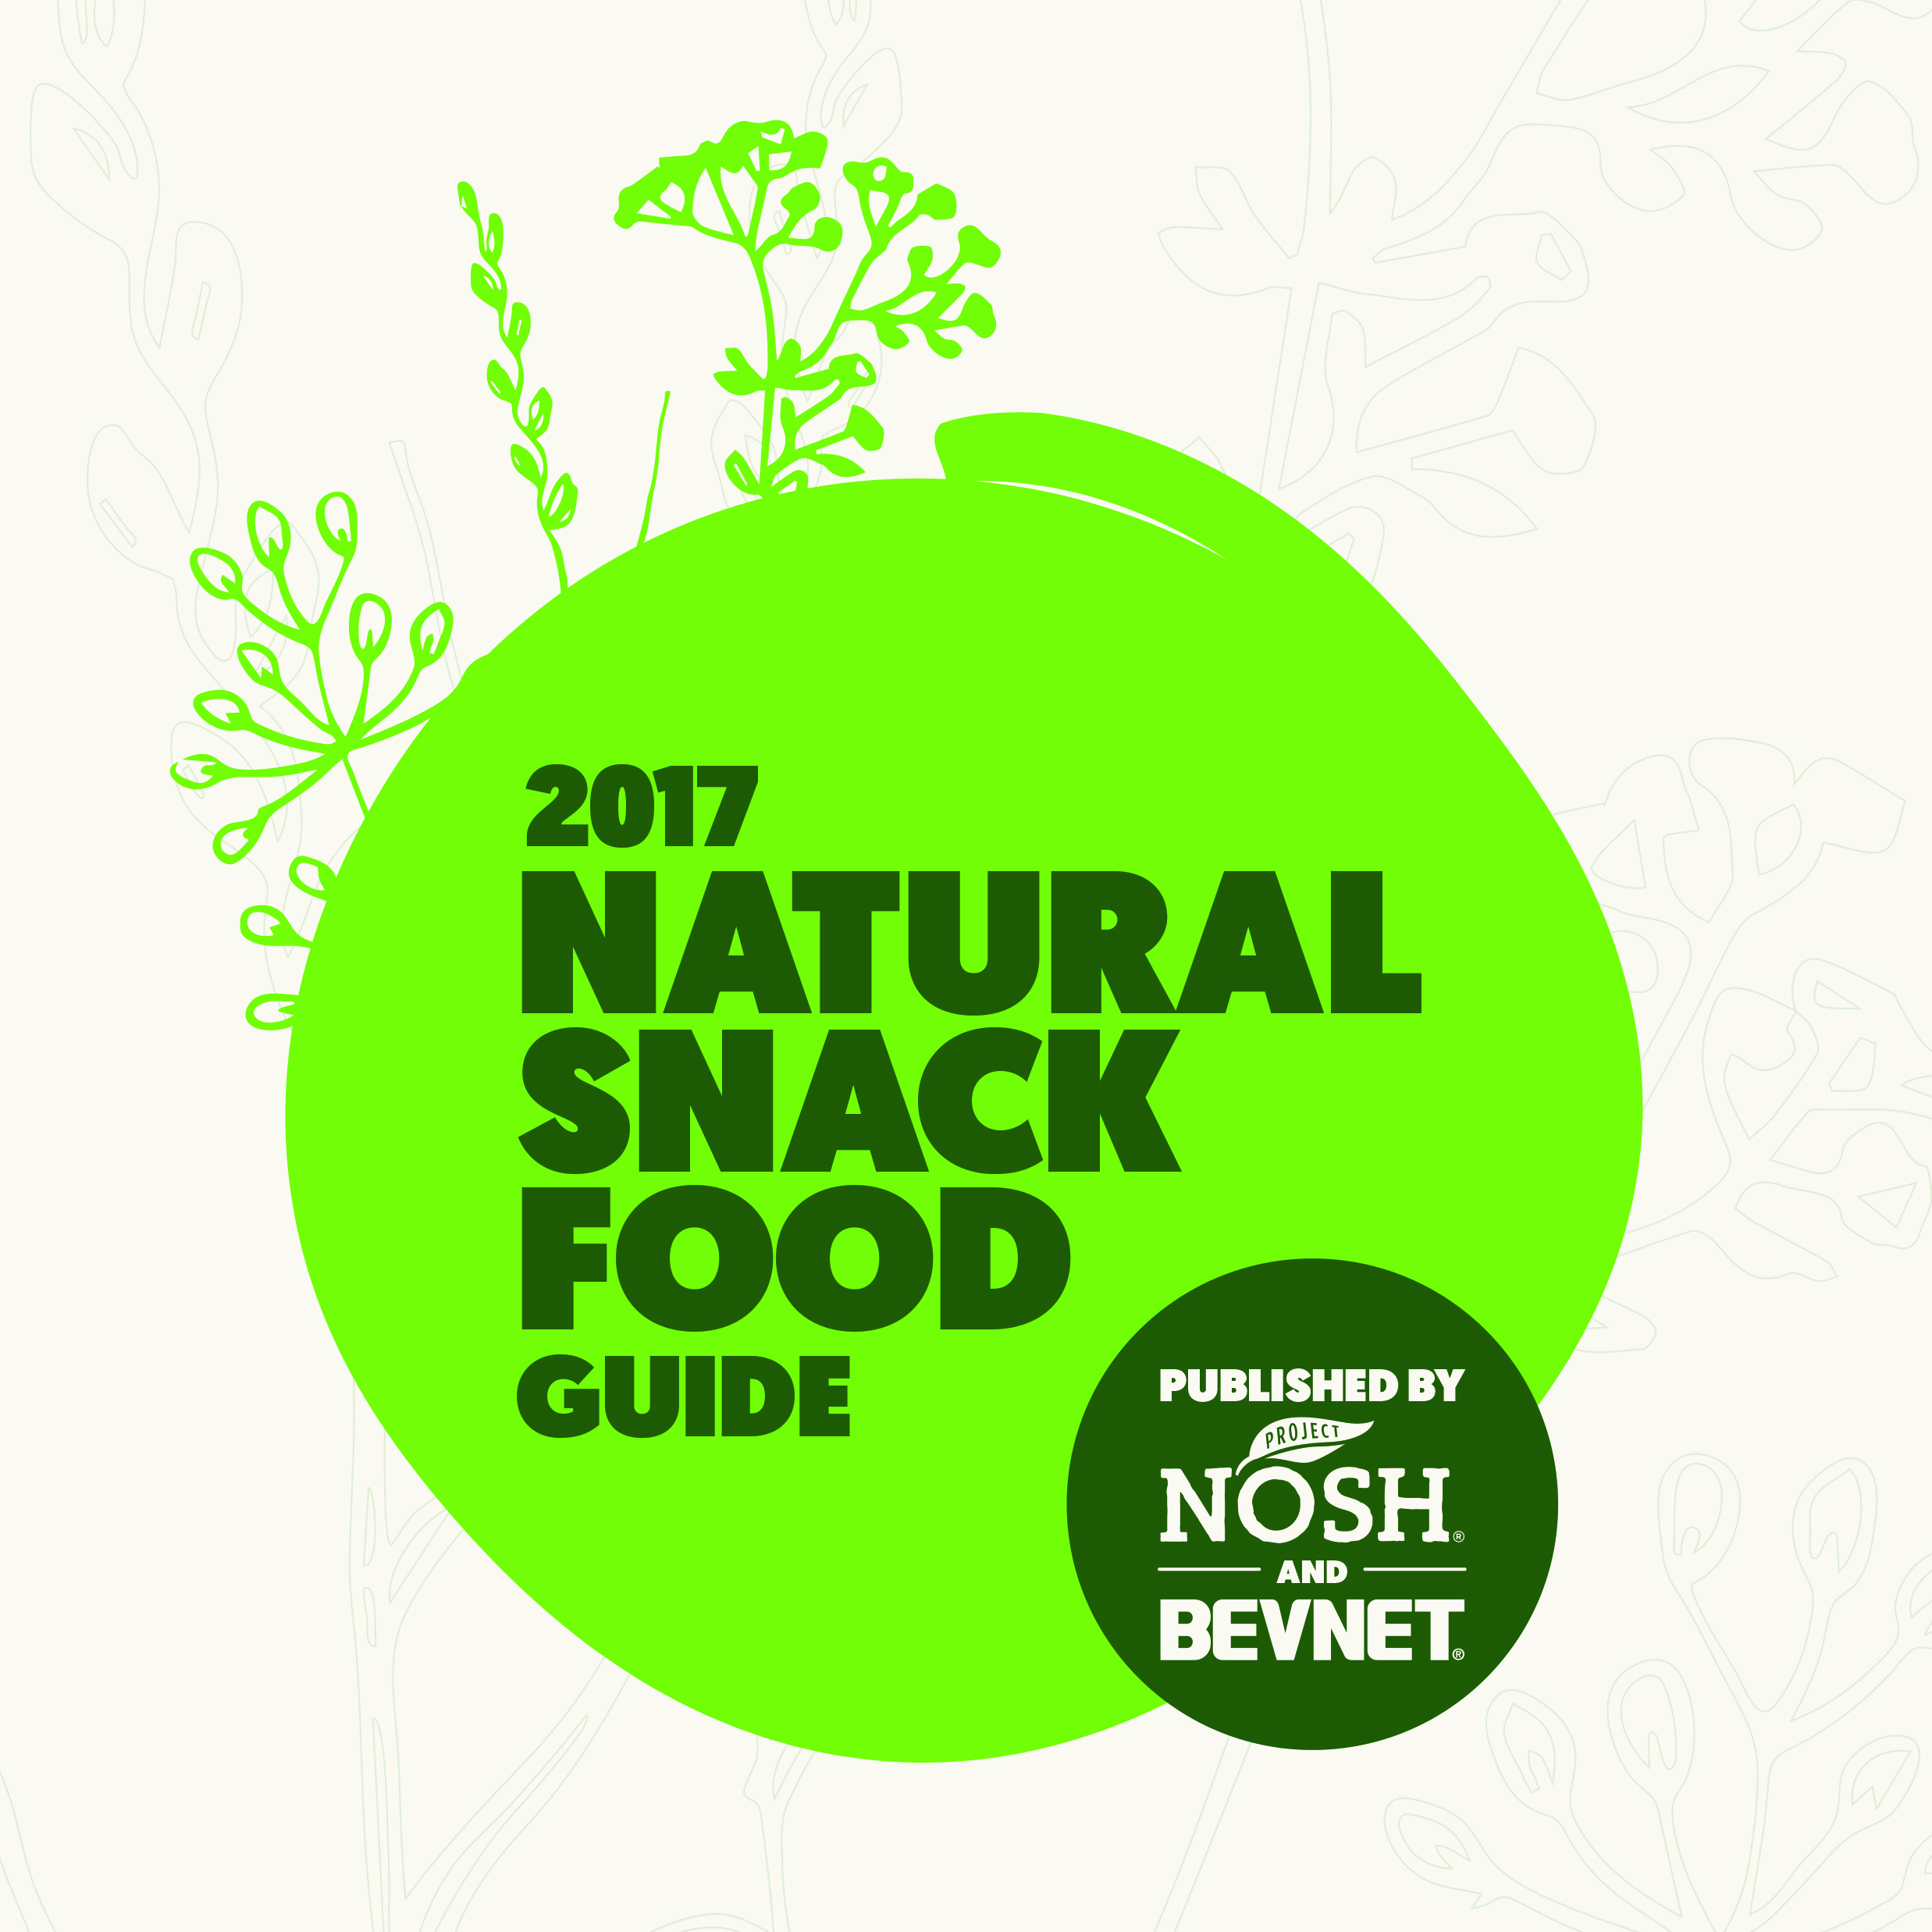 2017 Natural Snack Food Guide